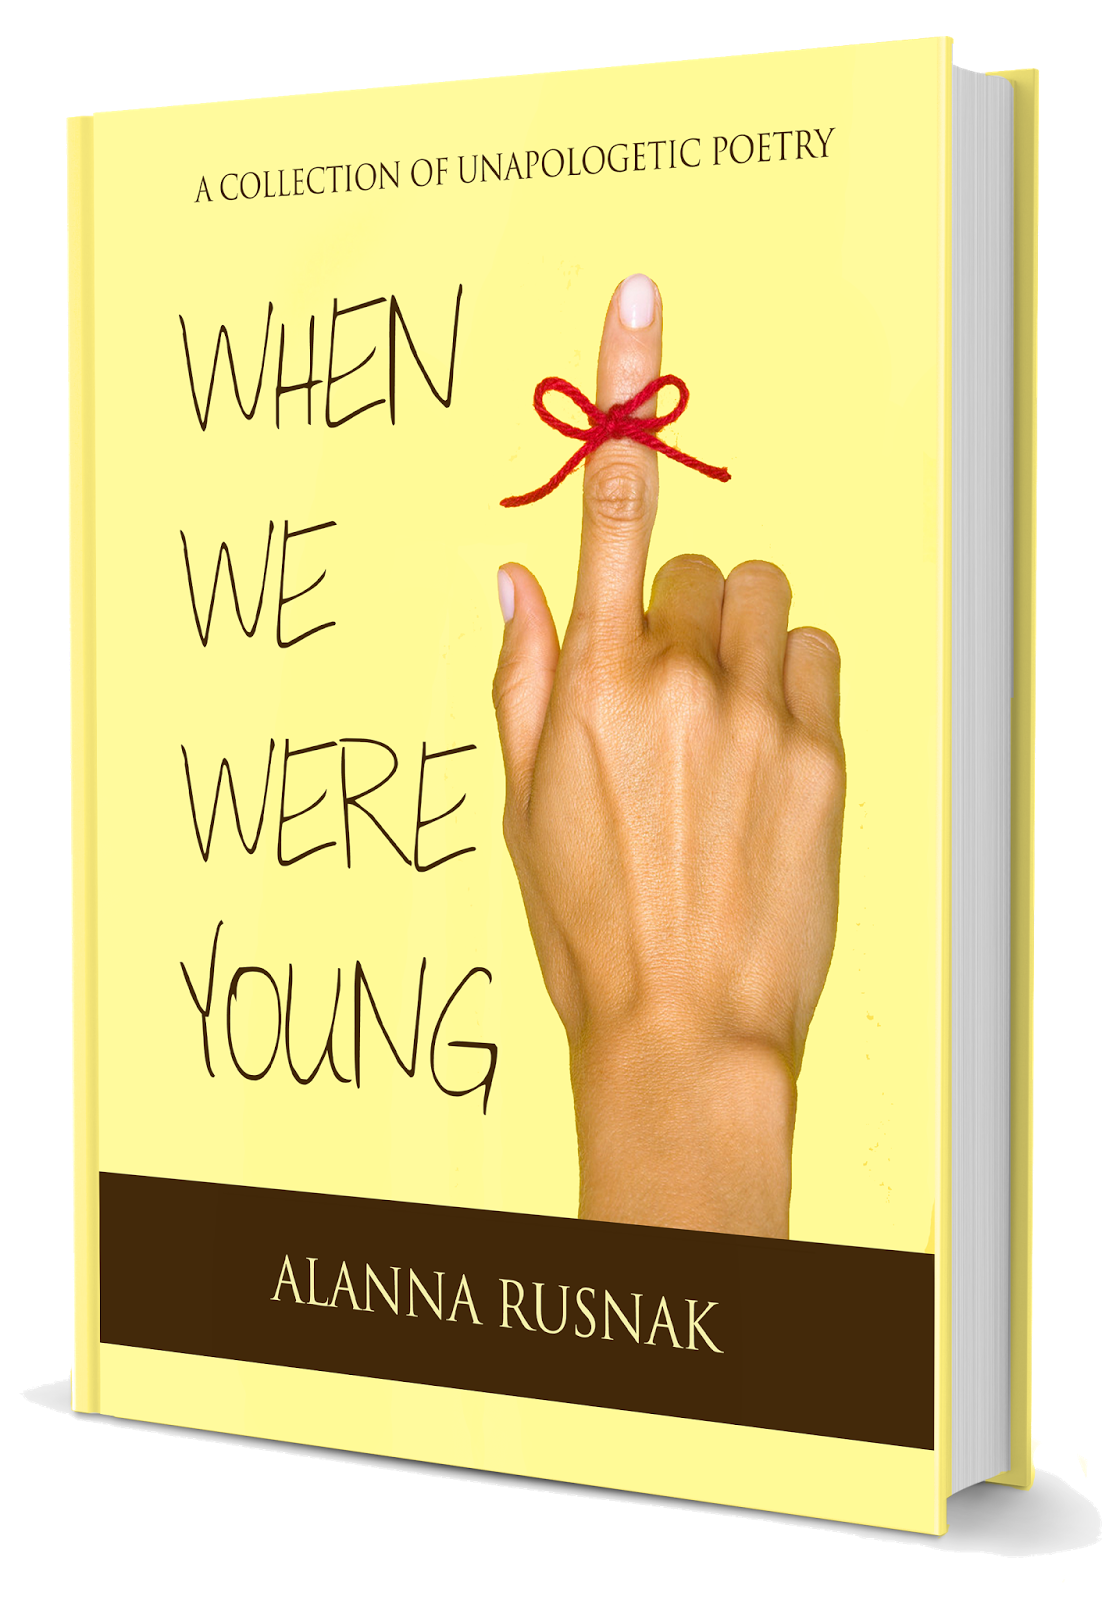 https://www.amazon.ca/When-Were-Young-Alanna-Rusnak-ebook/dp/B00F3QNT9A/ref=as_li_ss_tl?ie=UTF8&qid=1516463565&sr=8-1&keywords=when+we+were+young+alanna+rusnak&linkCode=sl1&tag=arpub0ea-20&linkId=8ffb9f9361486ac5819aec6f26da569a